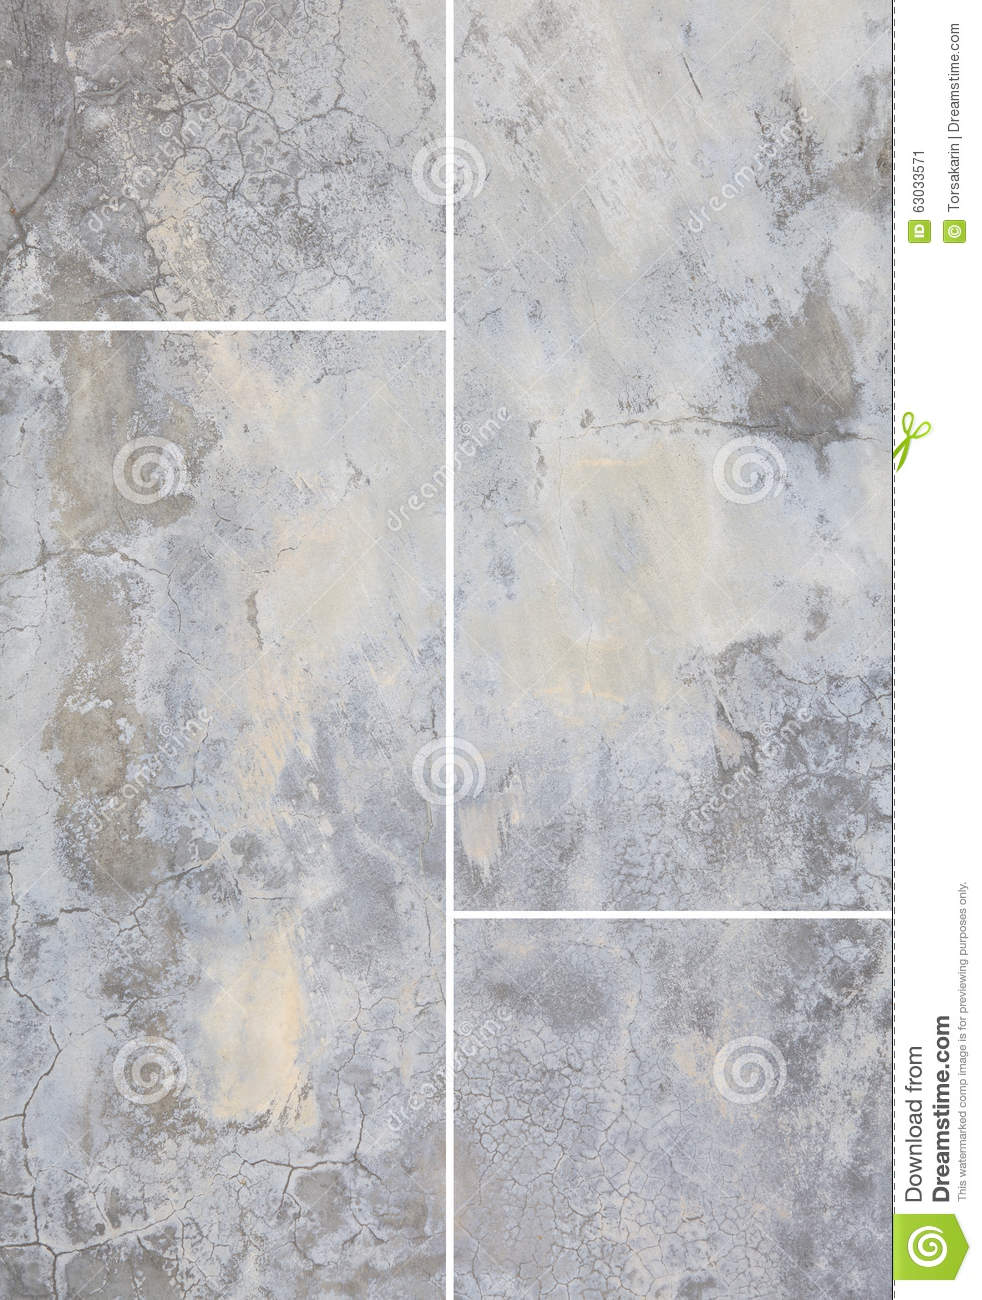 Concrete floor tile texture. Concrete Floor Tile Texture Stock Photo   Image  63033571